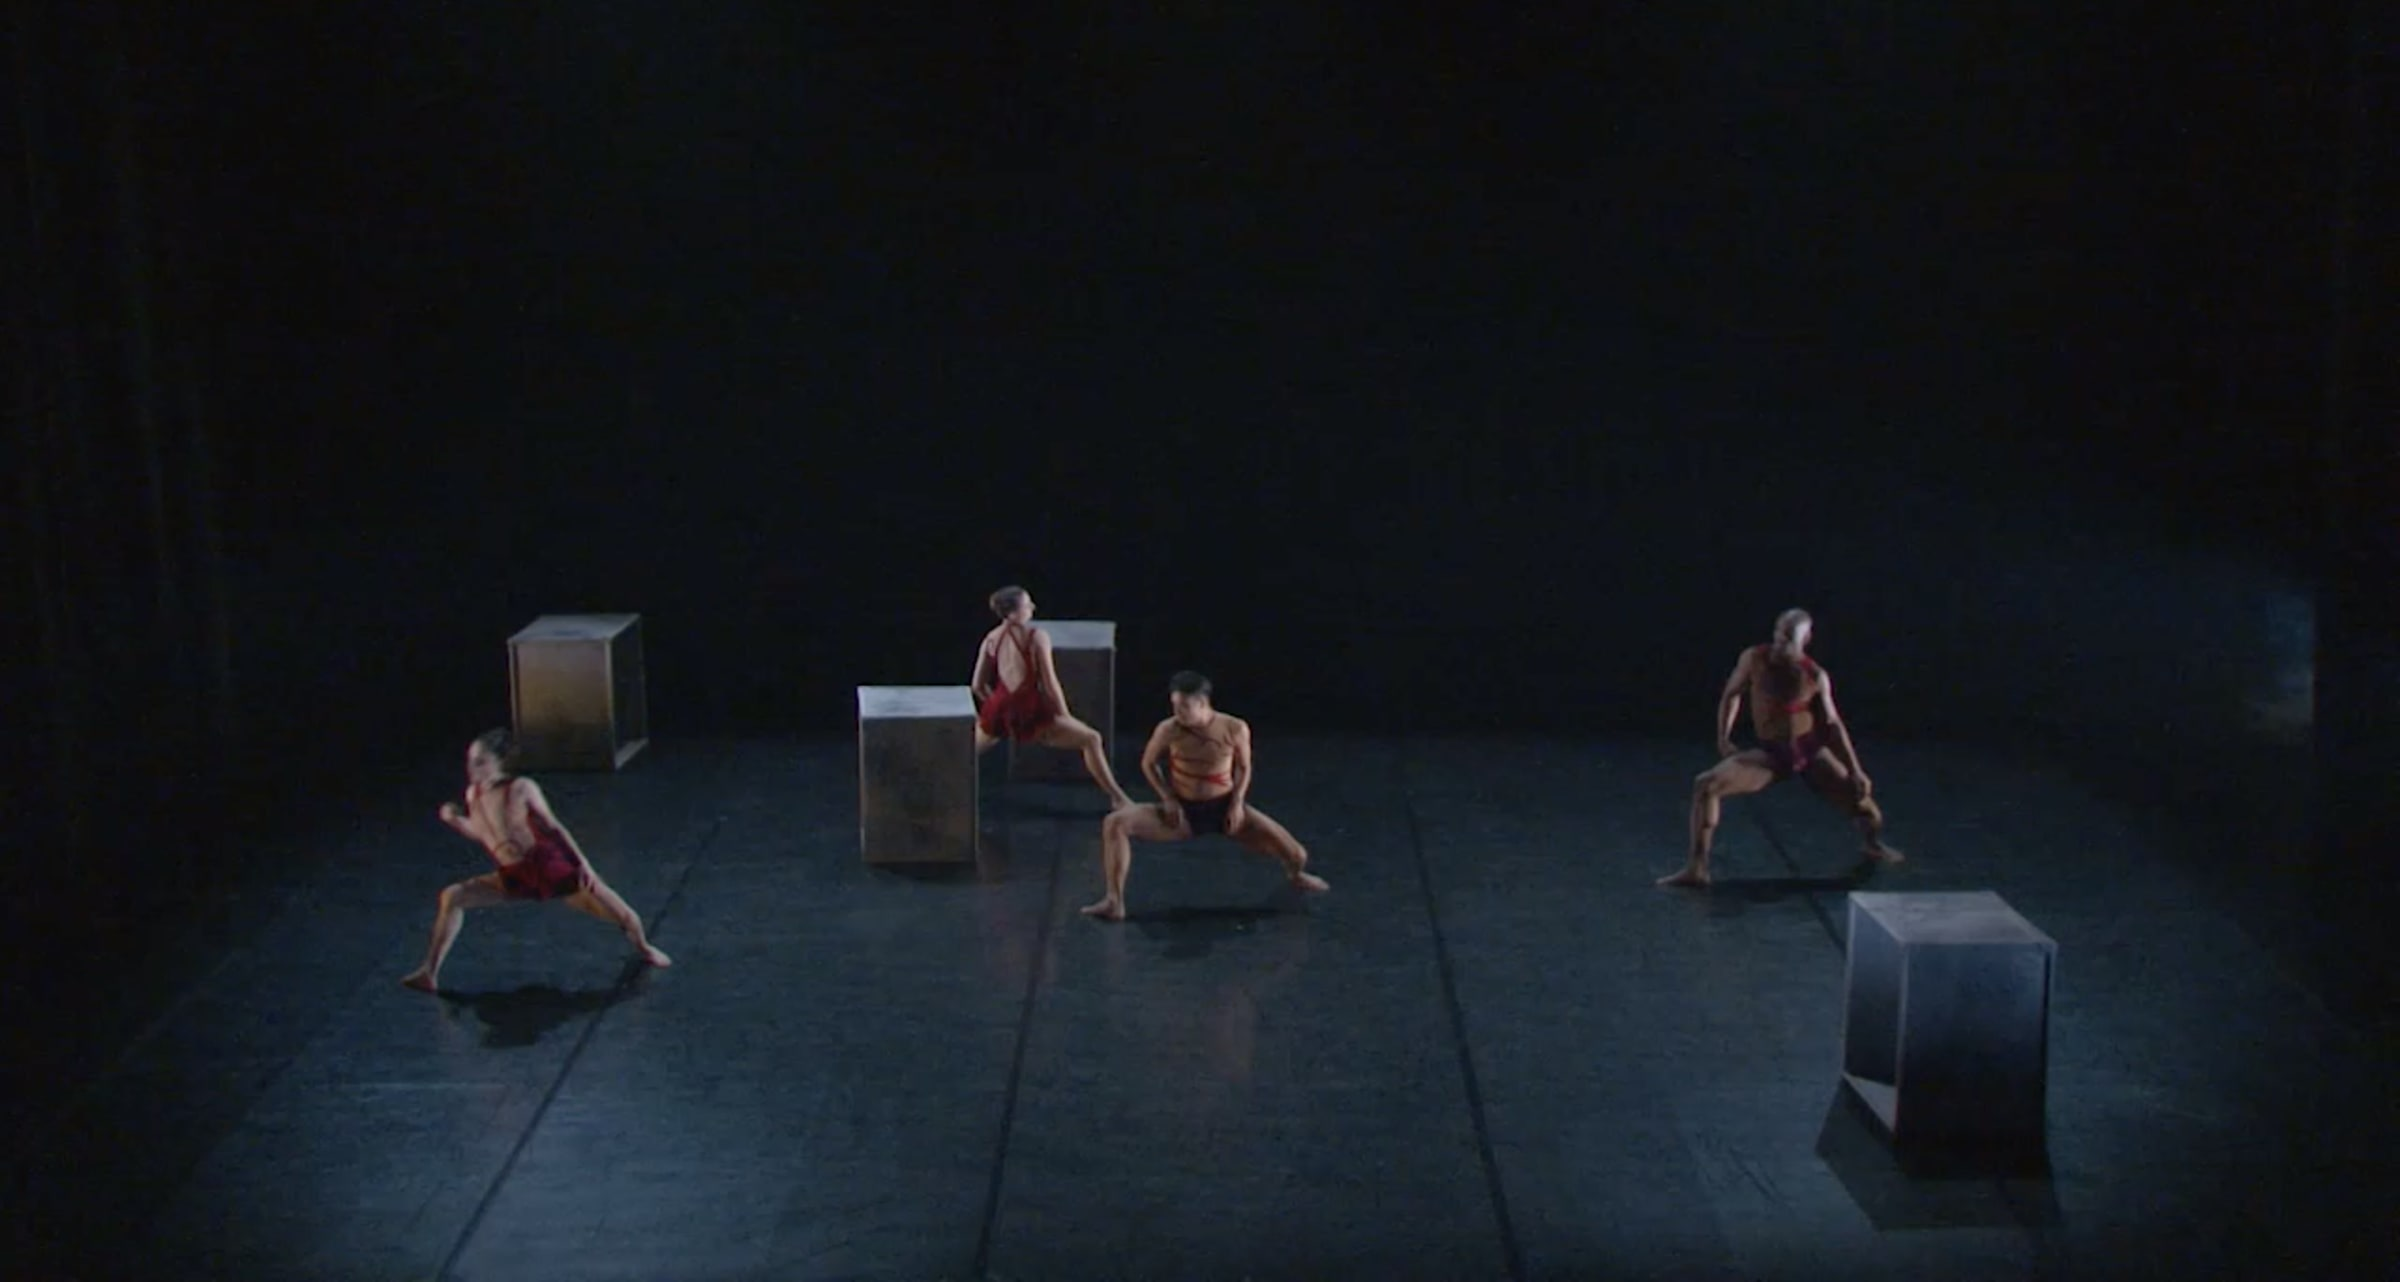 "<span class=""link fancybox-details-link""><a href=""/exhibitions/30/works/artworks11014/"">View Detail Page</a></span><div class=""medium"">Choreography: Sandrine Monin <br /> Score: Robert Rusconi<br /> Single Channel Video</div>"